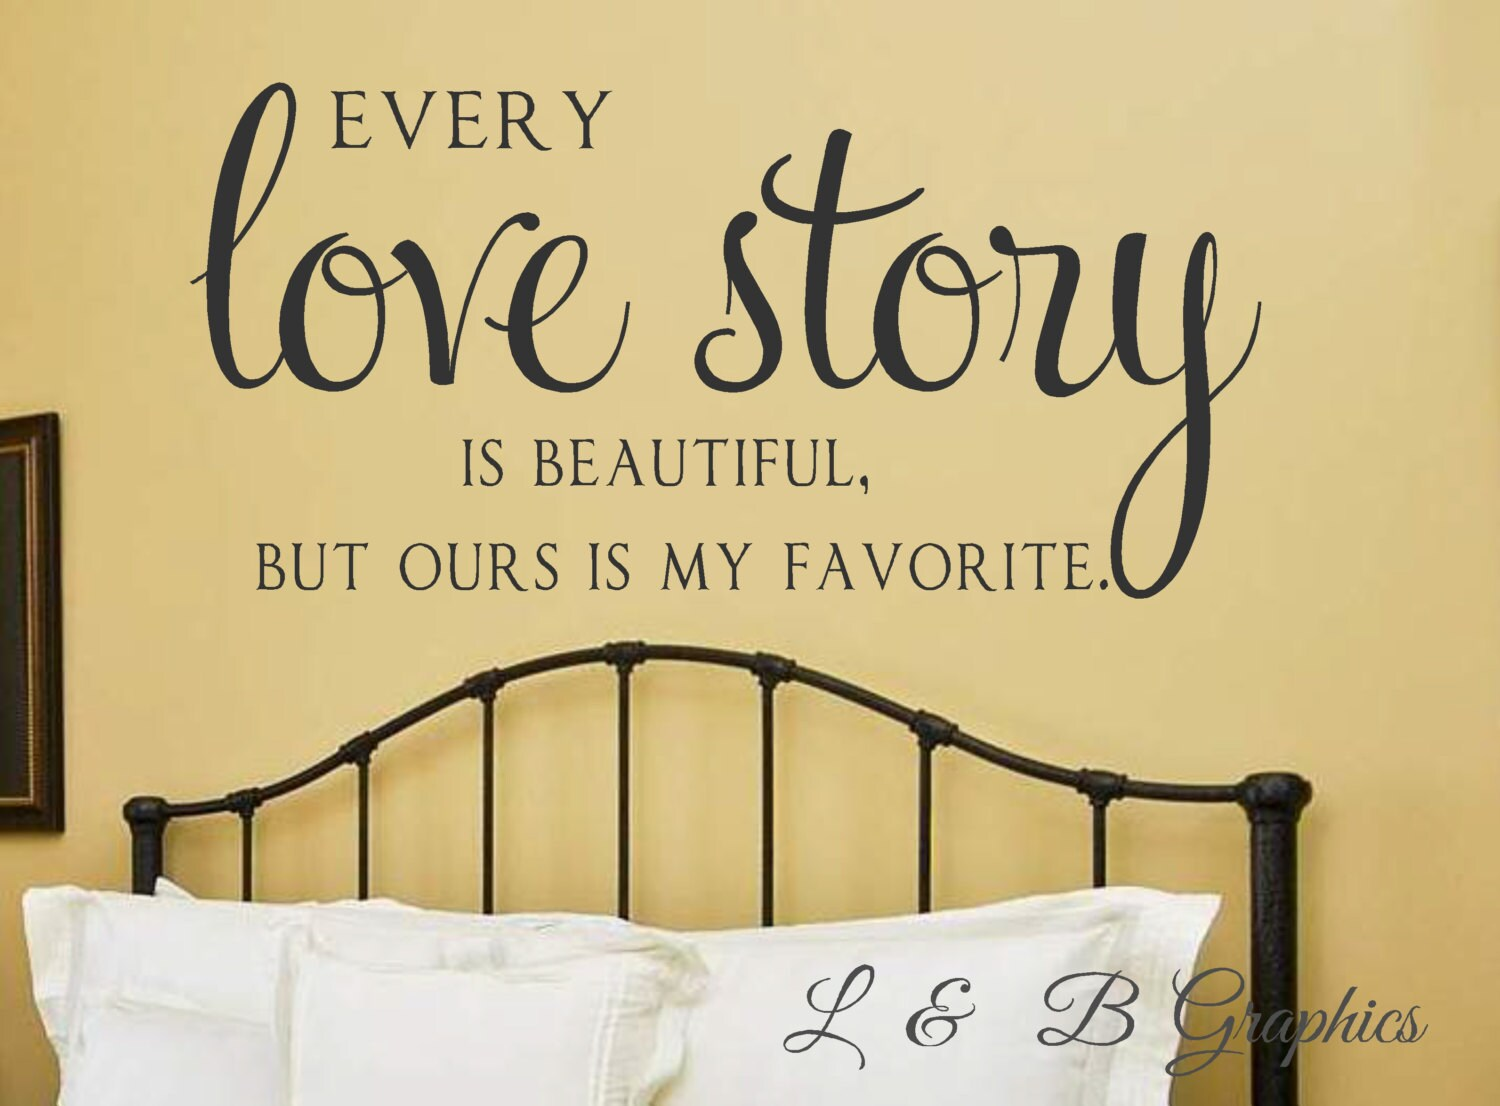 Every Love Story is Beautiful-Vinyl Wall Decal-Lettering